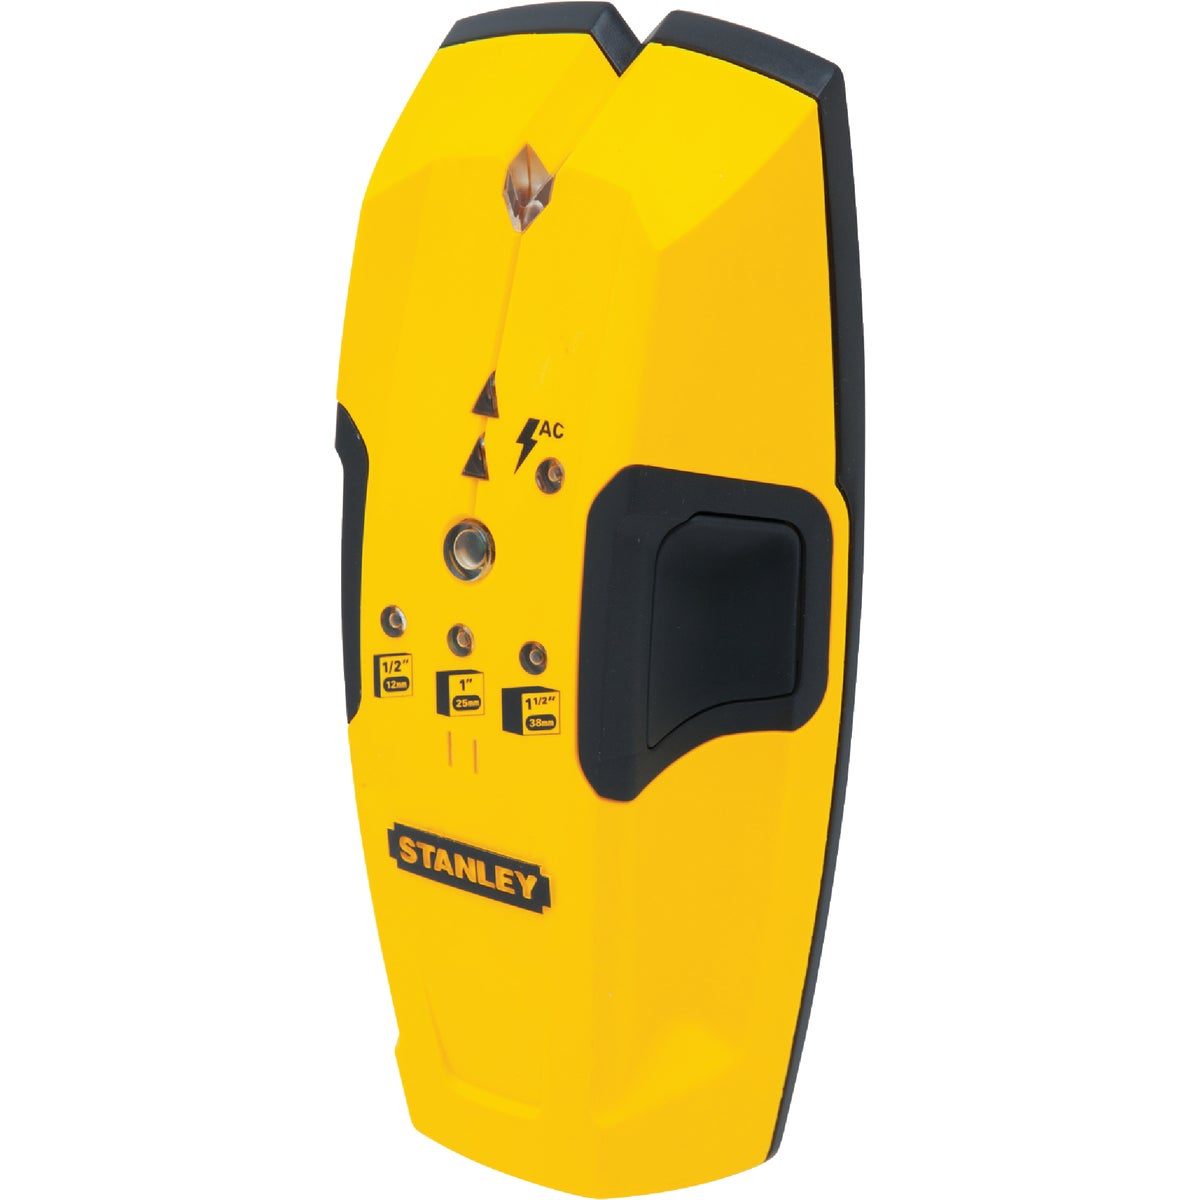 INTELISENSOR STUD FINDER - STHT77404 by Stanley Tools